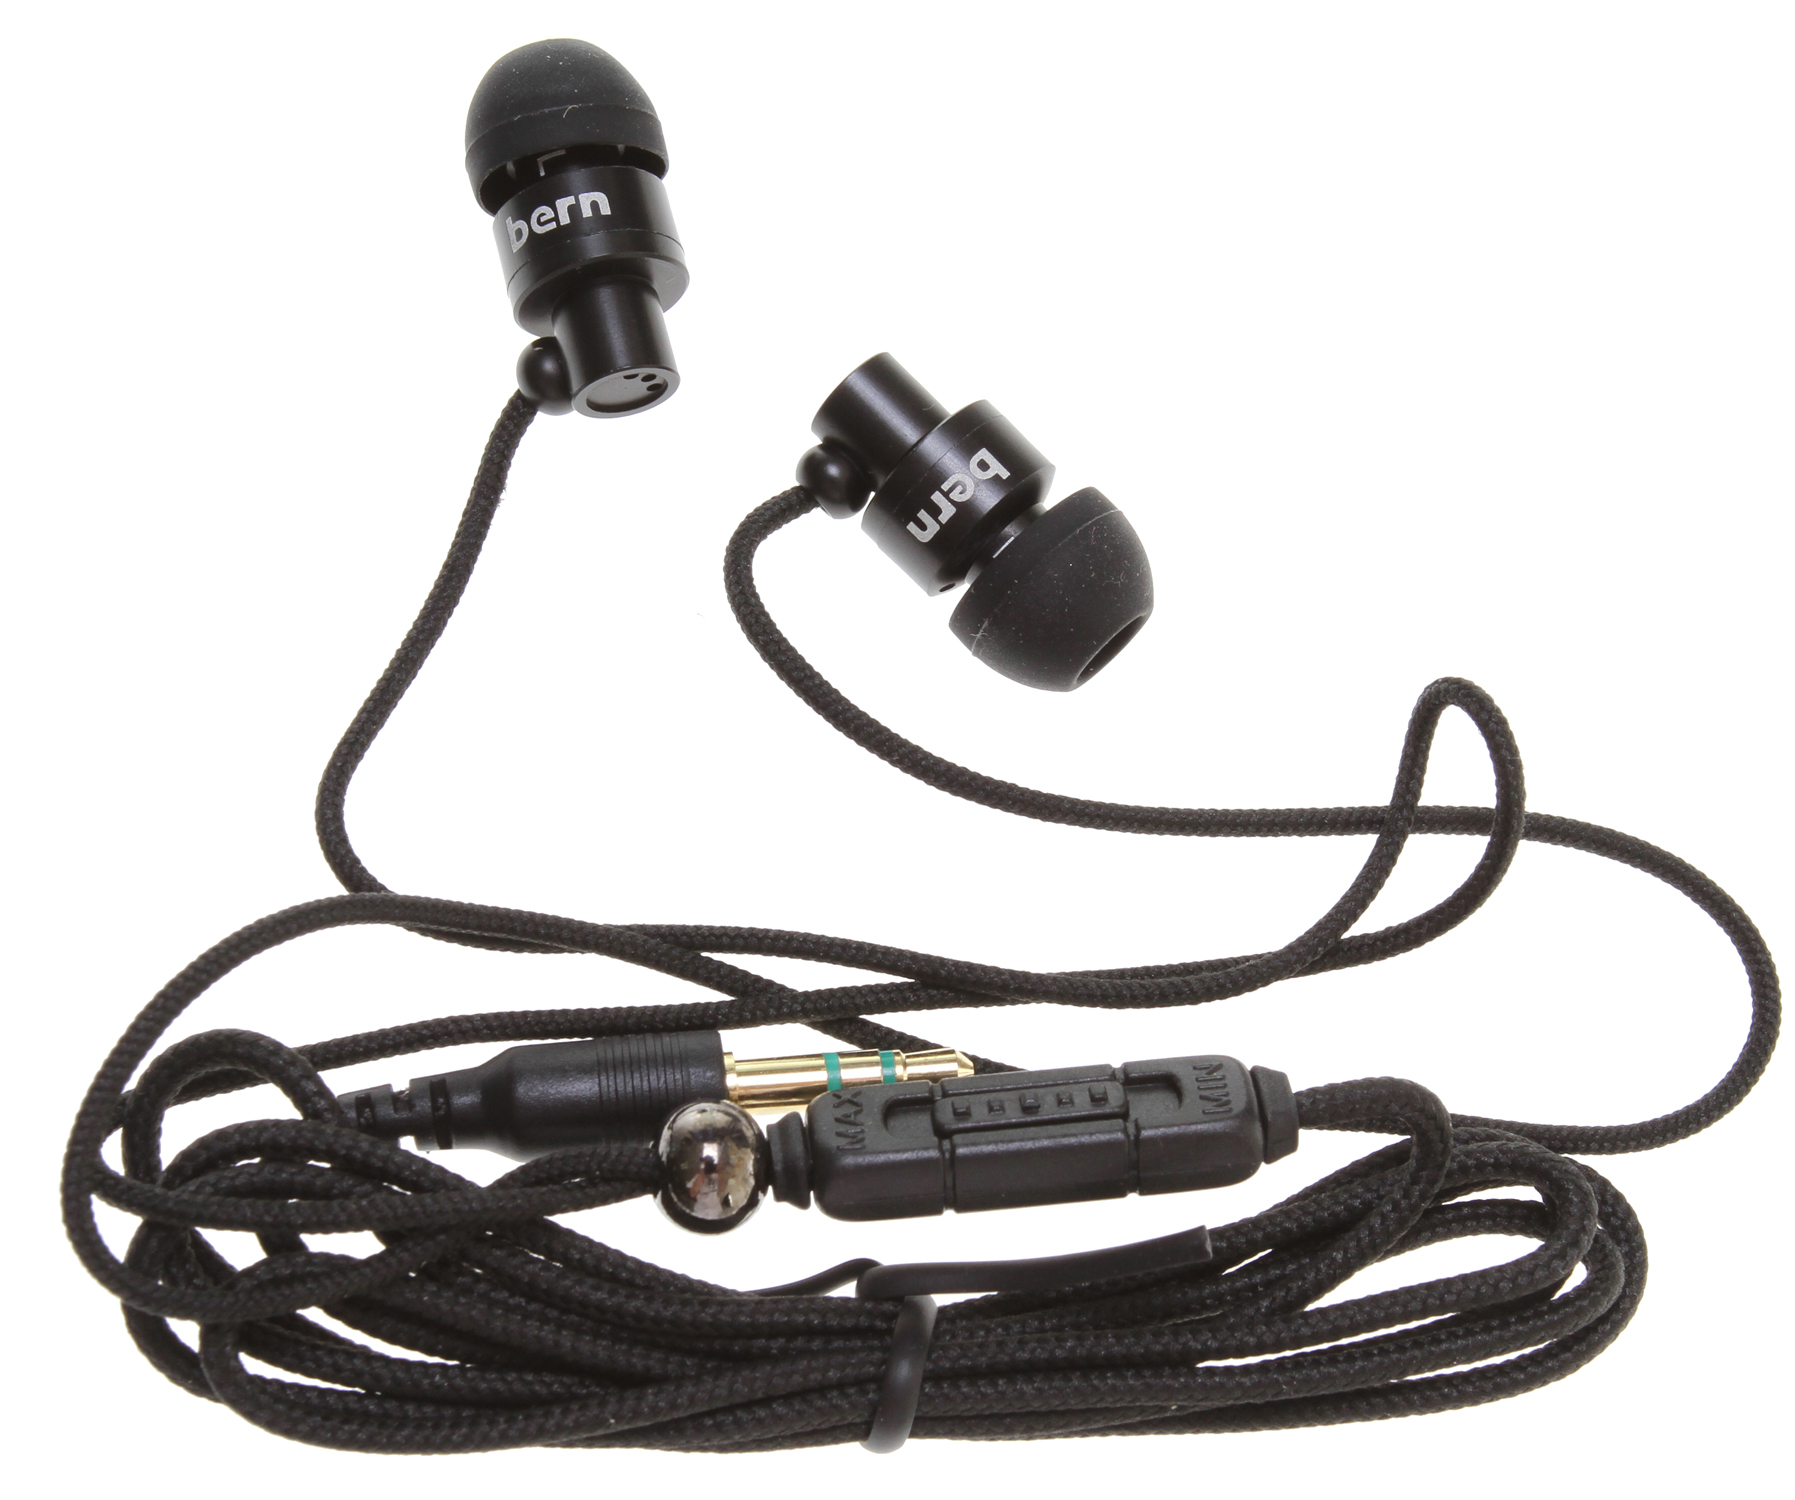 Entertainment Standard buds feature durable plastic housings, 15mm drivers and rubberized cord. Great sounding ear buds for any occasion. Includes plastic travel case.  MP3 and iPhone compatible  Durable Plastic Housings   15mm Drivers   Rubberized Cord   Includes Plastic Travel Case   MP3 and iPhone Compatible - $12.95